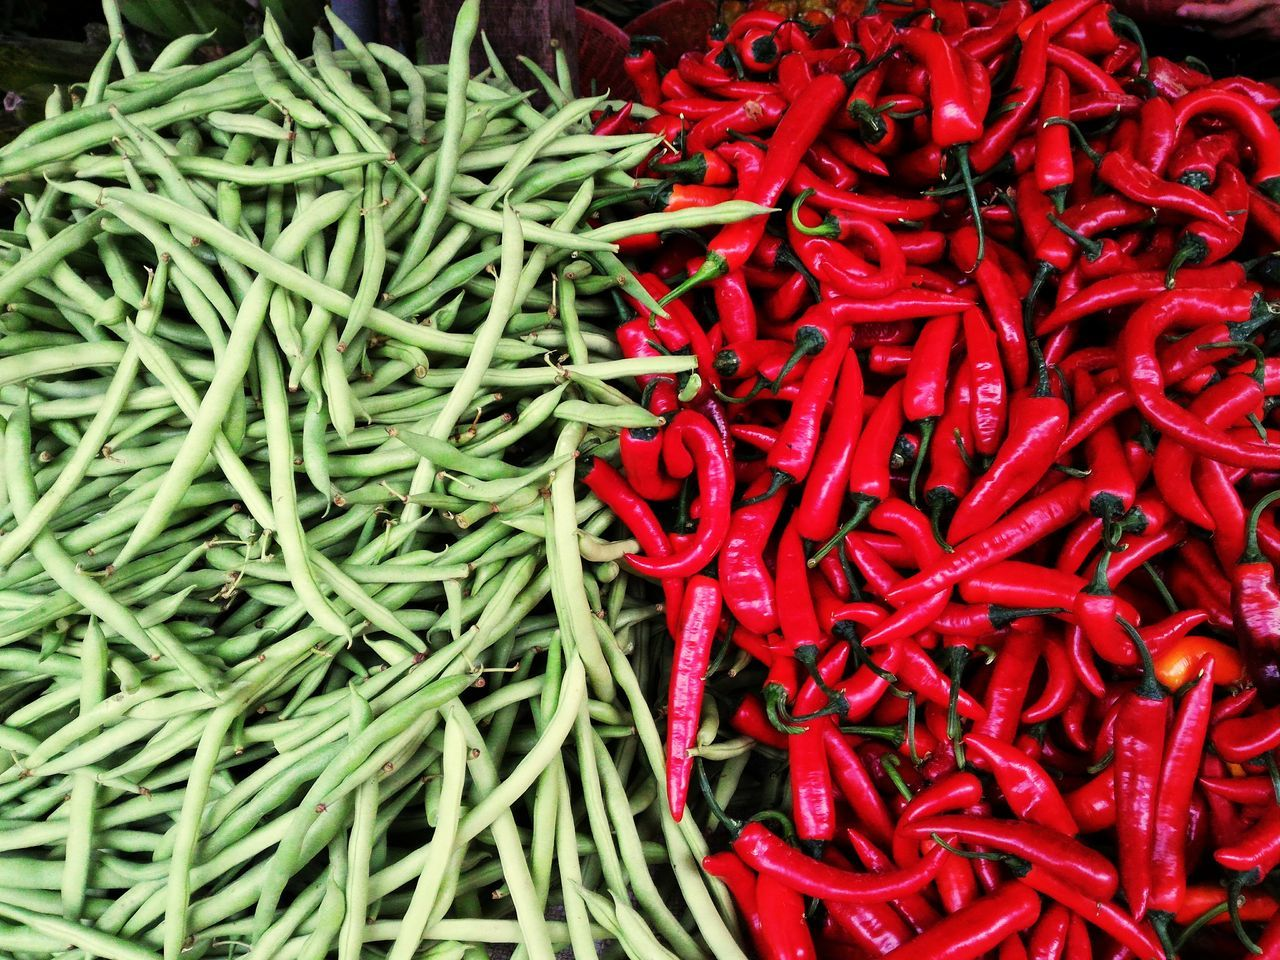 Red Abundance Spice Food And Drink Food Large Group Of Objects No People For Sale Freshness Market Full Frame Backgrounds Heap Retail  Day Outdoors Close-up Chilies Contrasting Colors Green Red Bazaar Pepper Market Marketplace EyeEmNewHere The Street Photographer - 2017 EyeEm Awards The Photojournalist - 2017 EyeEm Awards